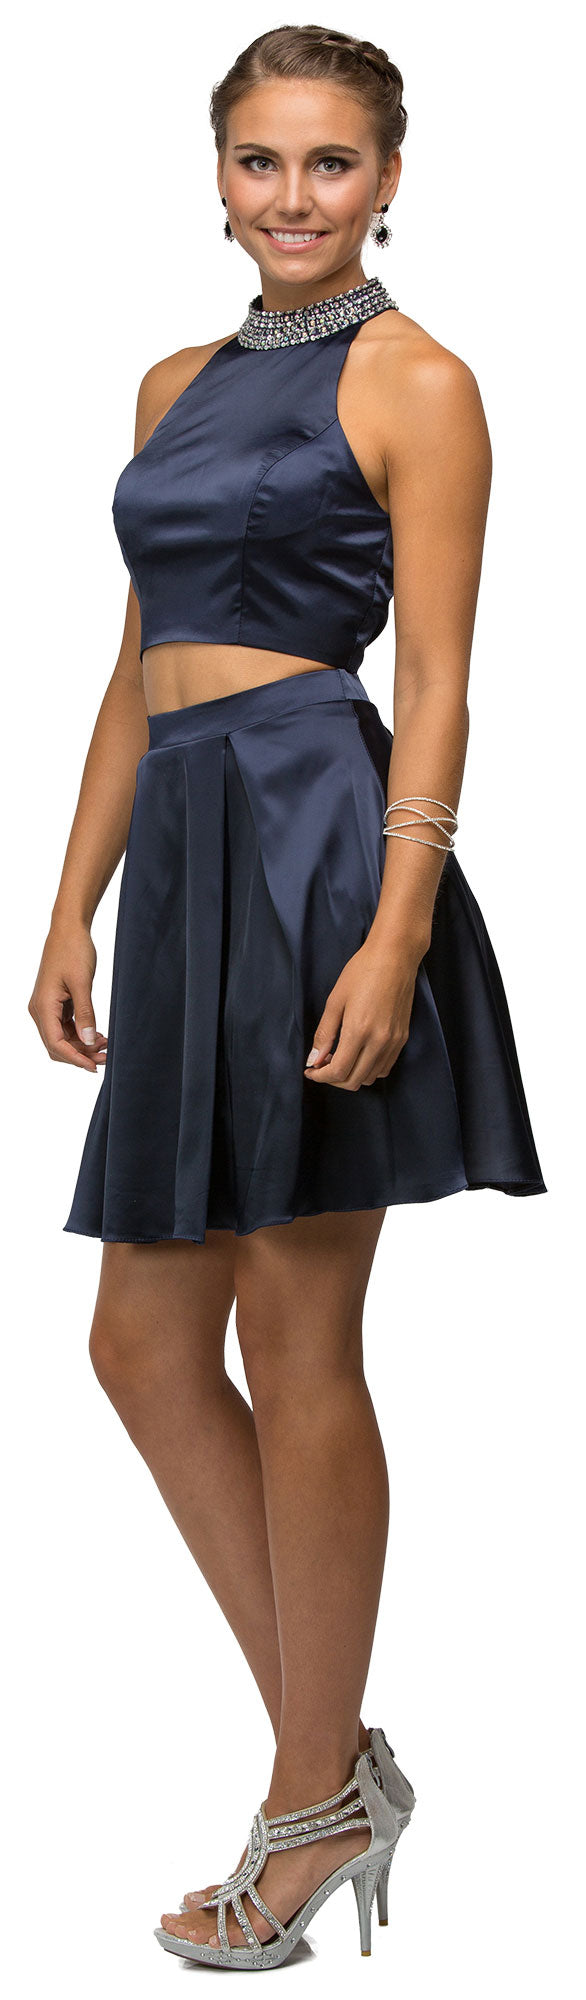 Image of Jeweled Collar Two Piece Short Homecoming Party Dress in Navy